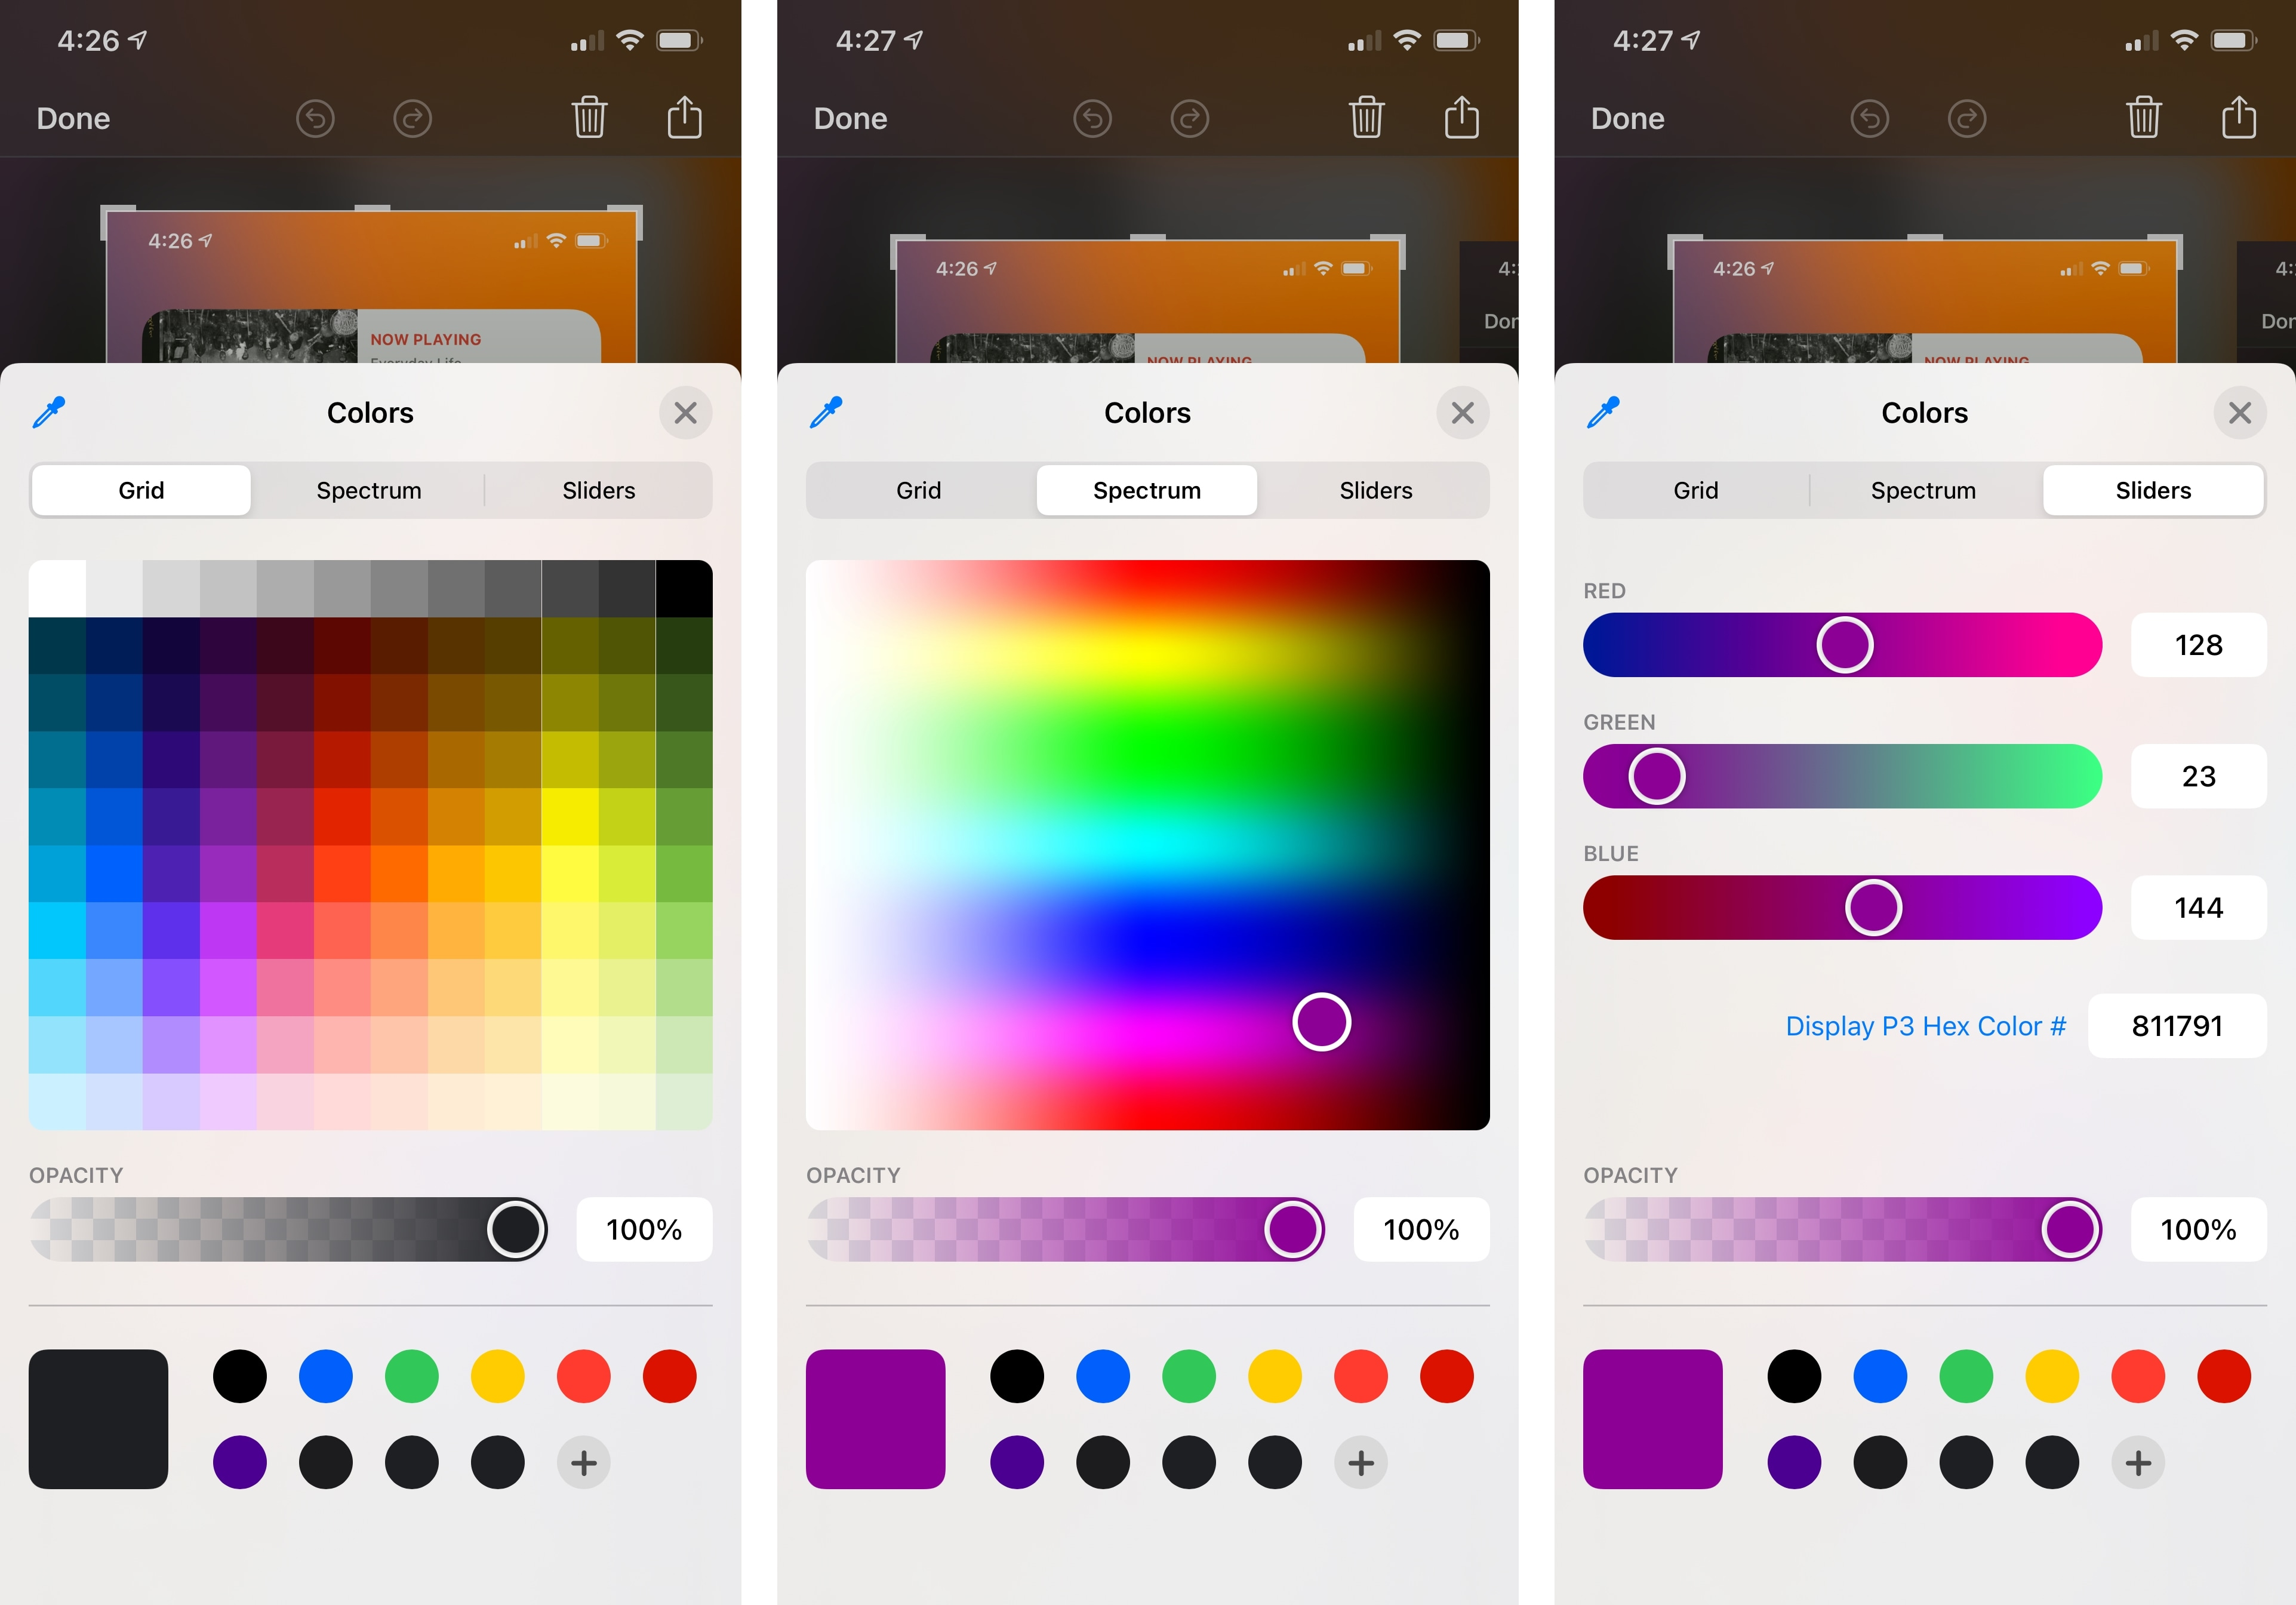 The different modes of iOS 14's color picker.